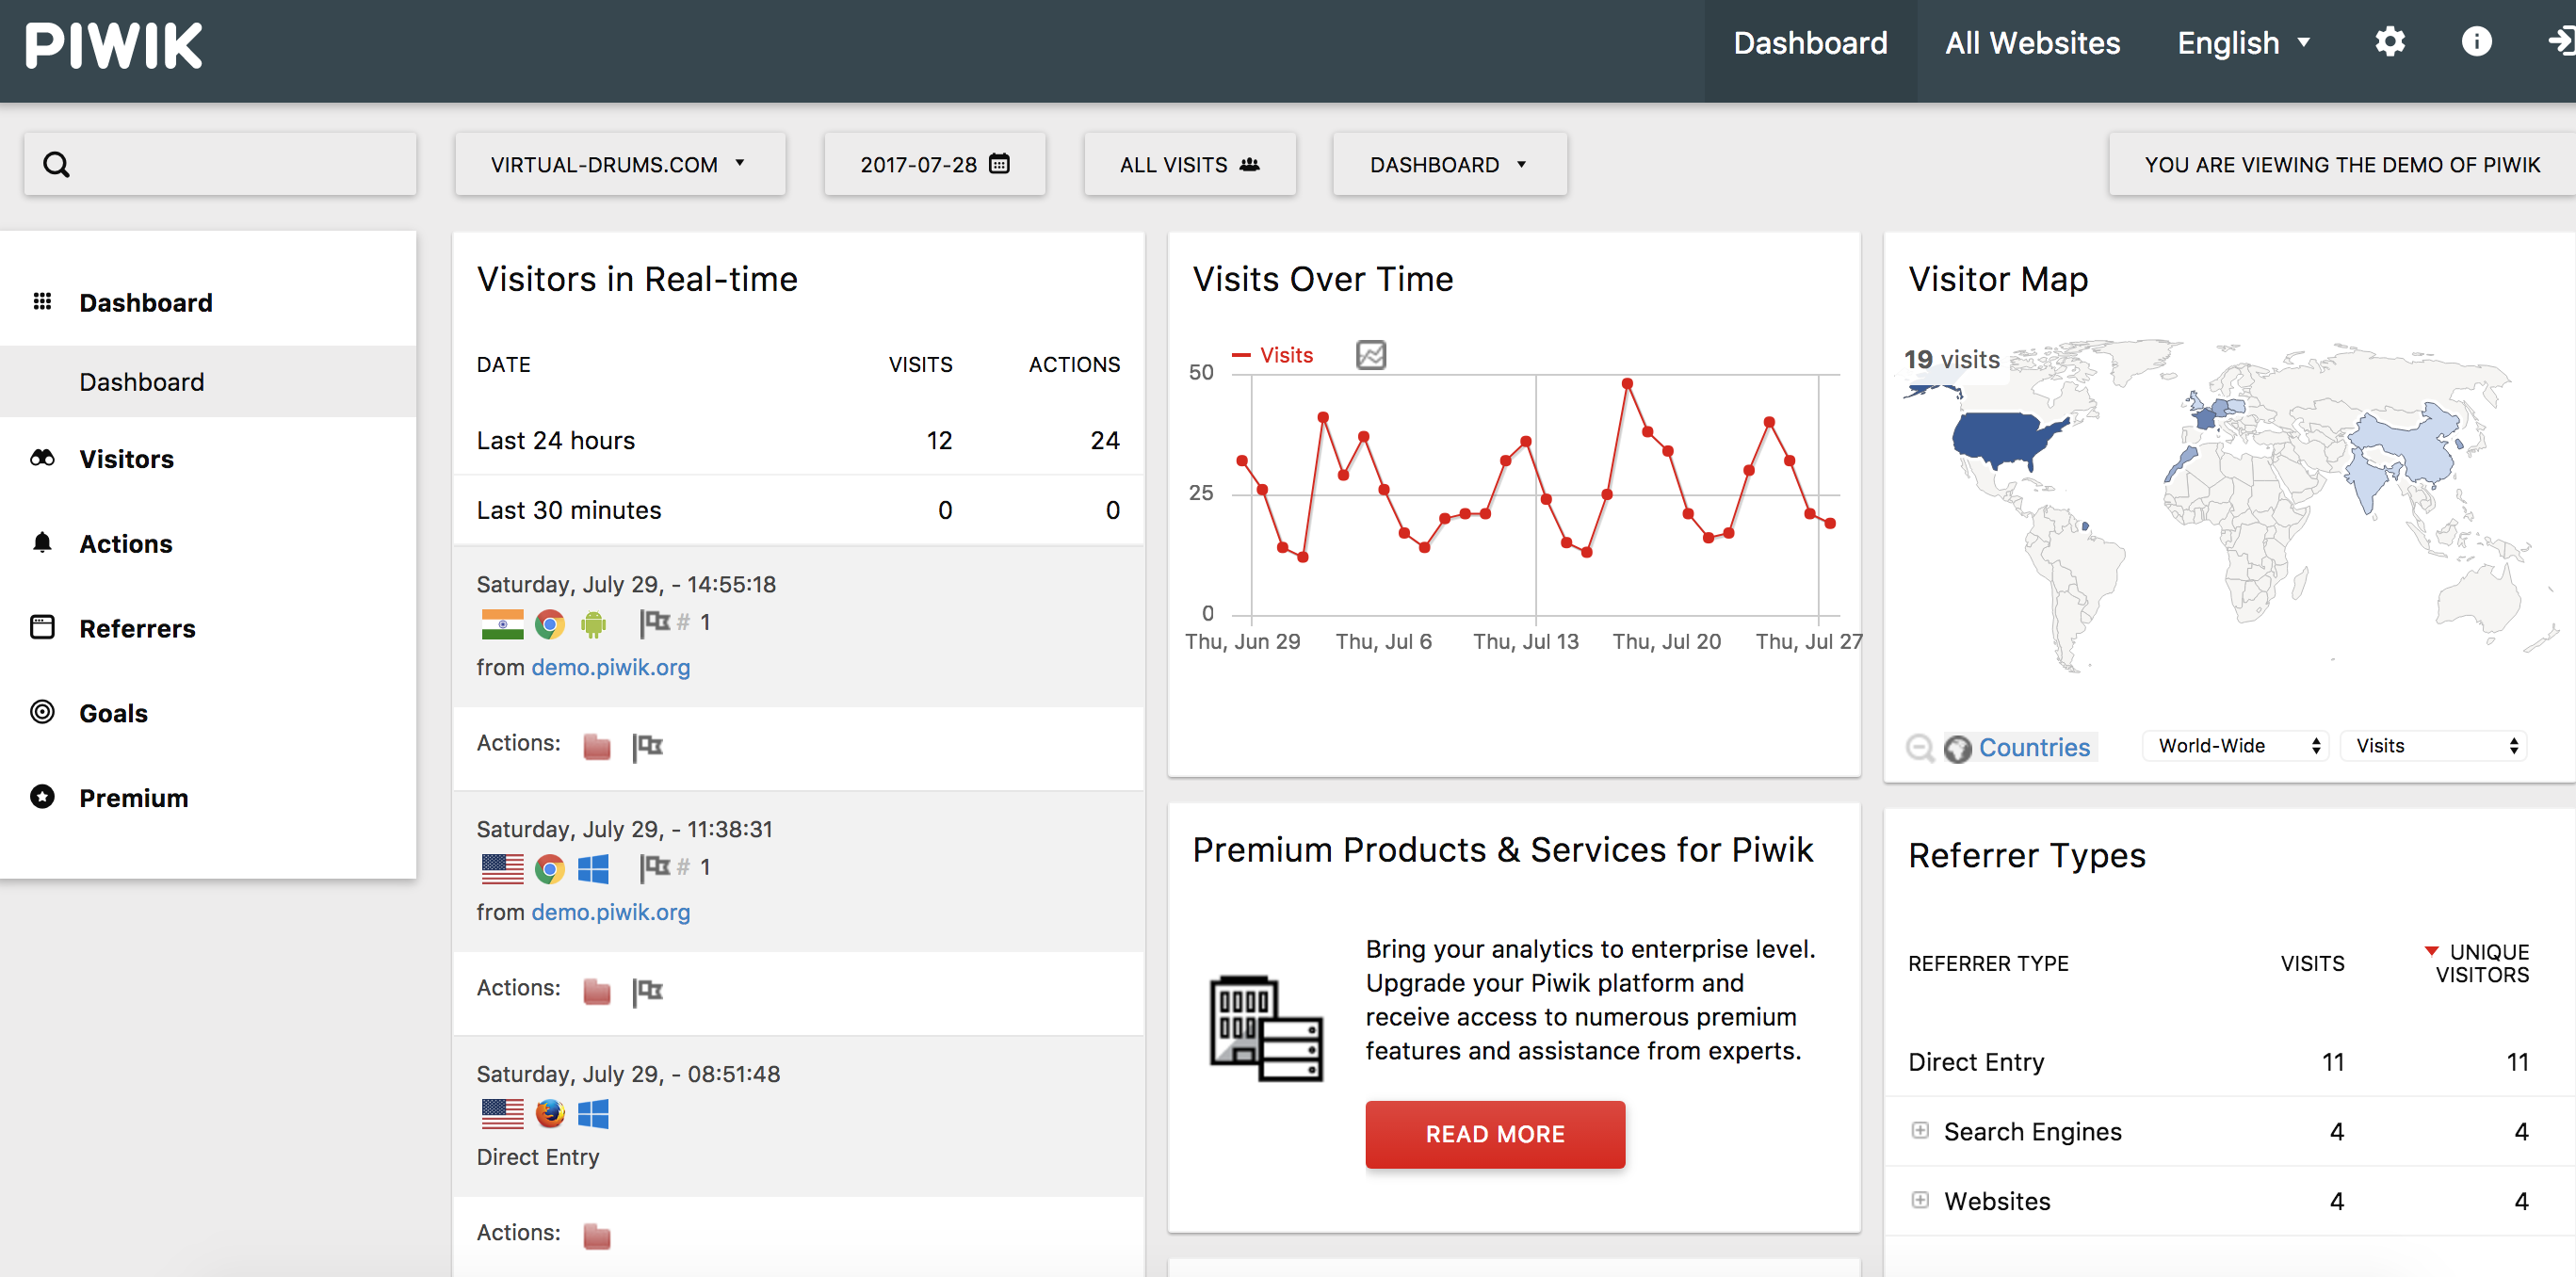 Provides real-time information on visitors and shares data about visits over time, visitor map, and referrer type